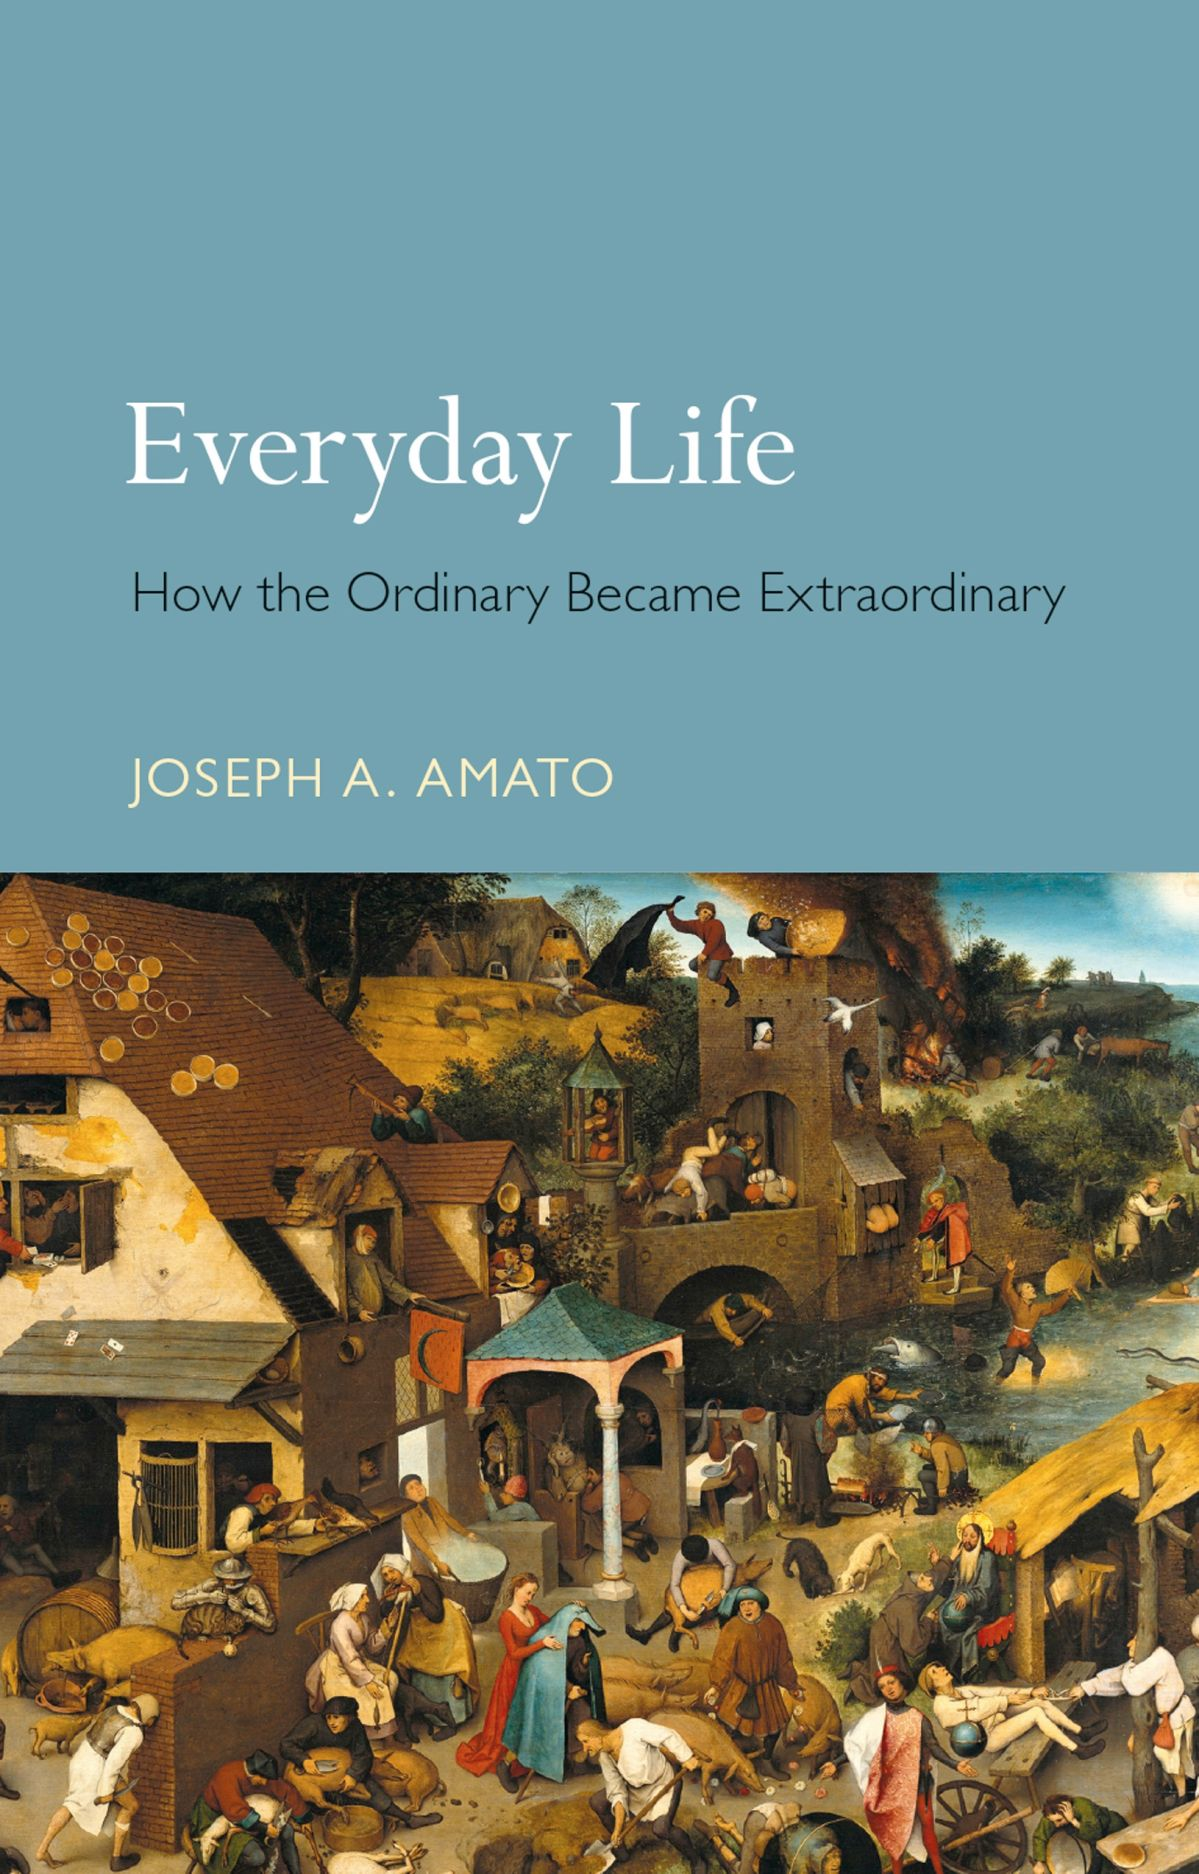 Everyday Life: How the Ordinary Became Extraordinary